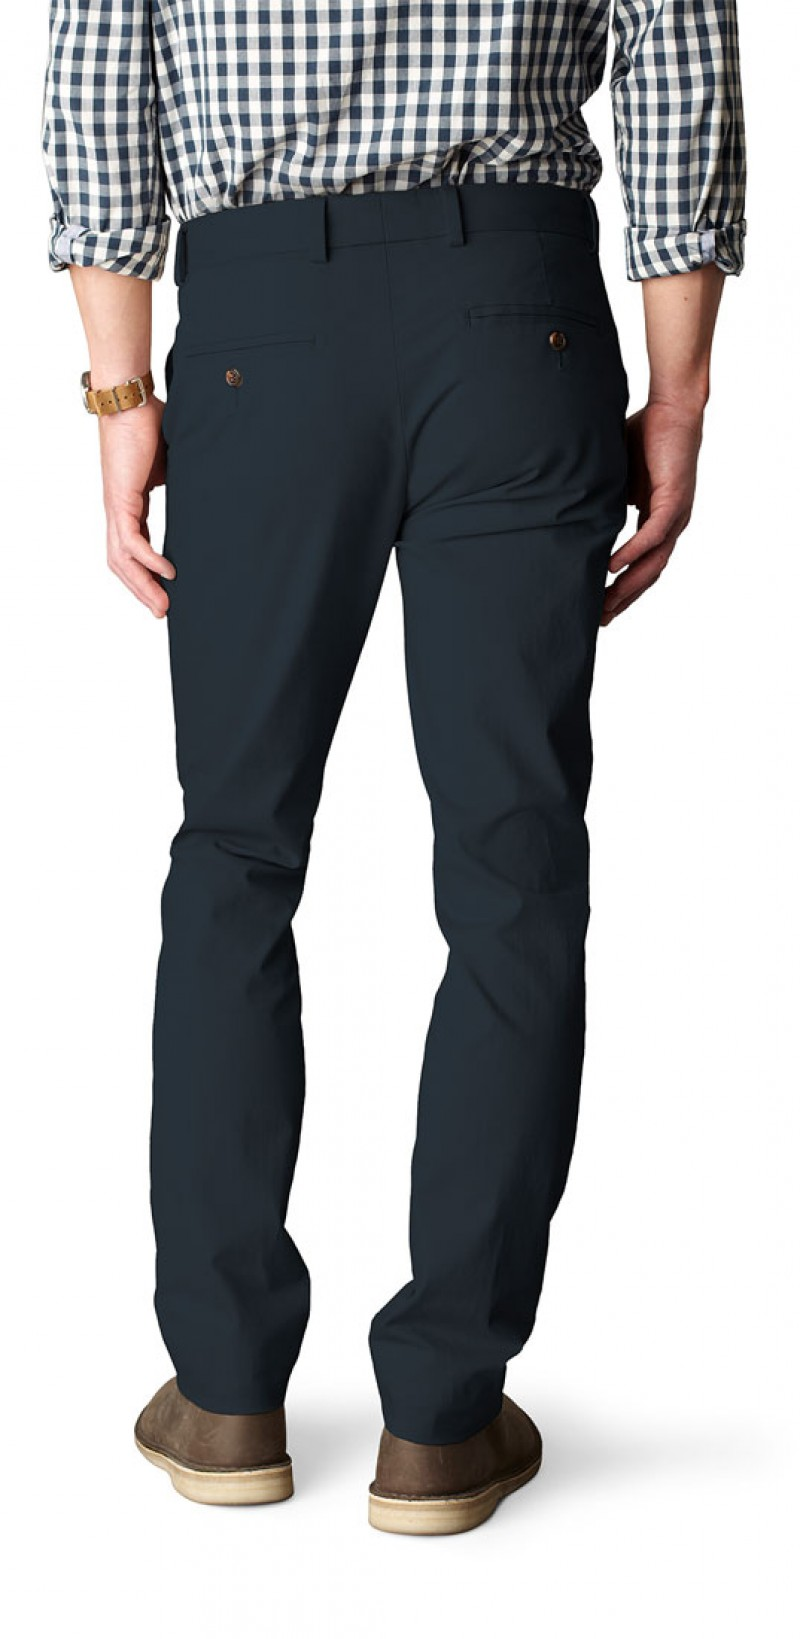 Dockers ZERO - EXTRA SLIM STRETCH - Navy